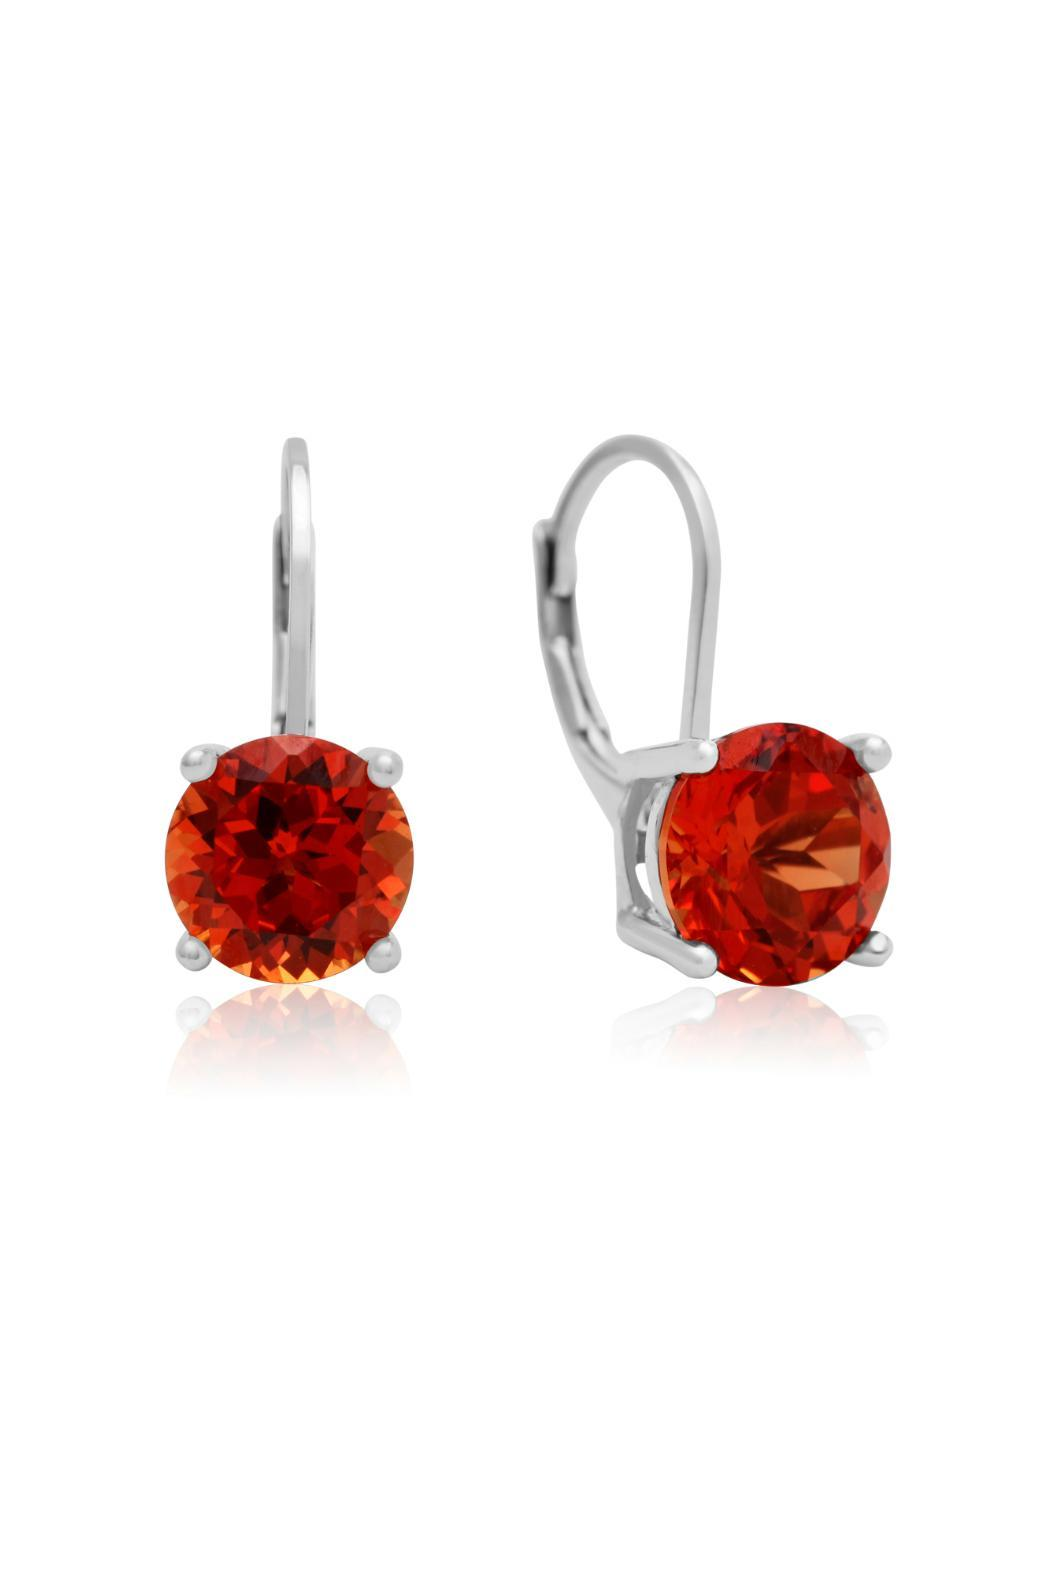 chatham sapphire eco peach earrings padparadscha jewelry friendly products